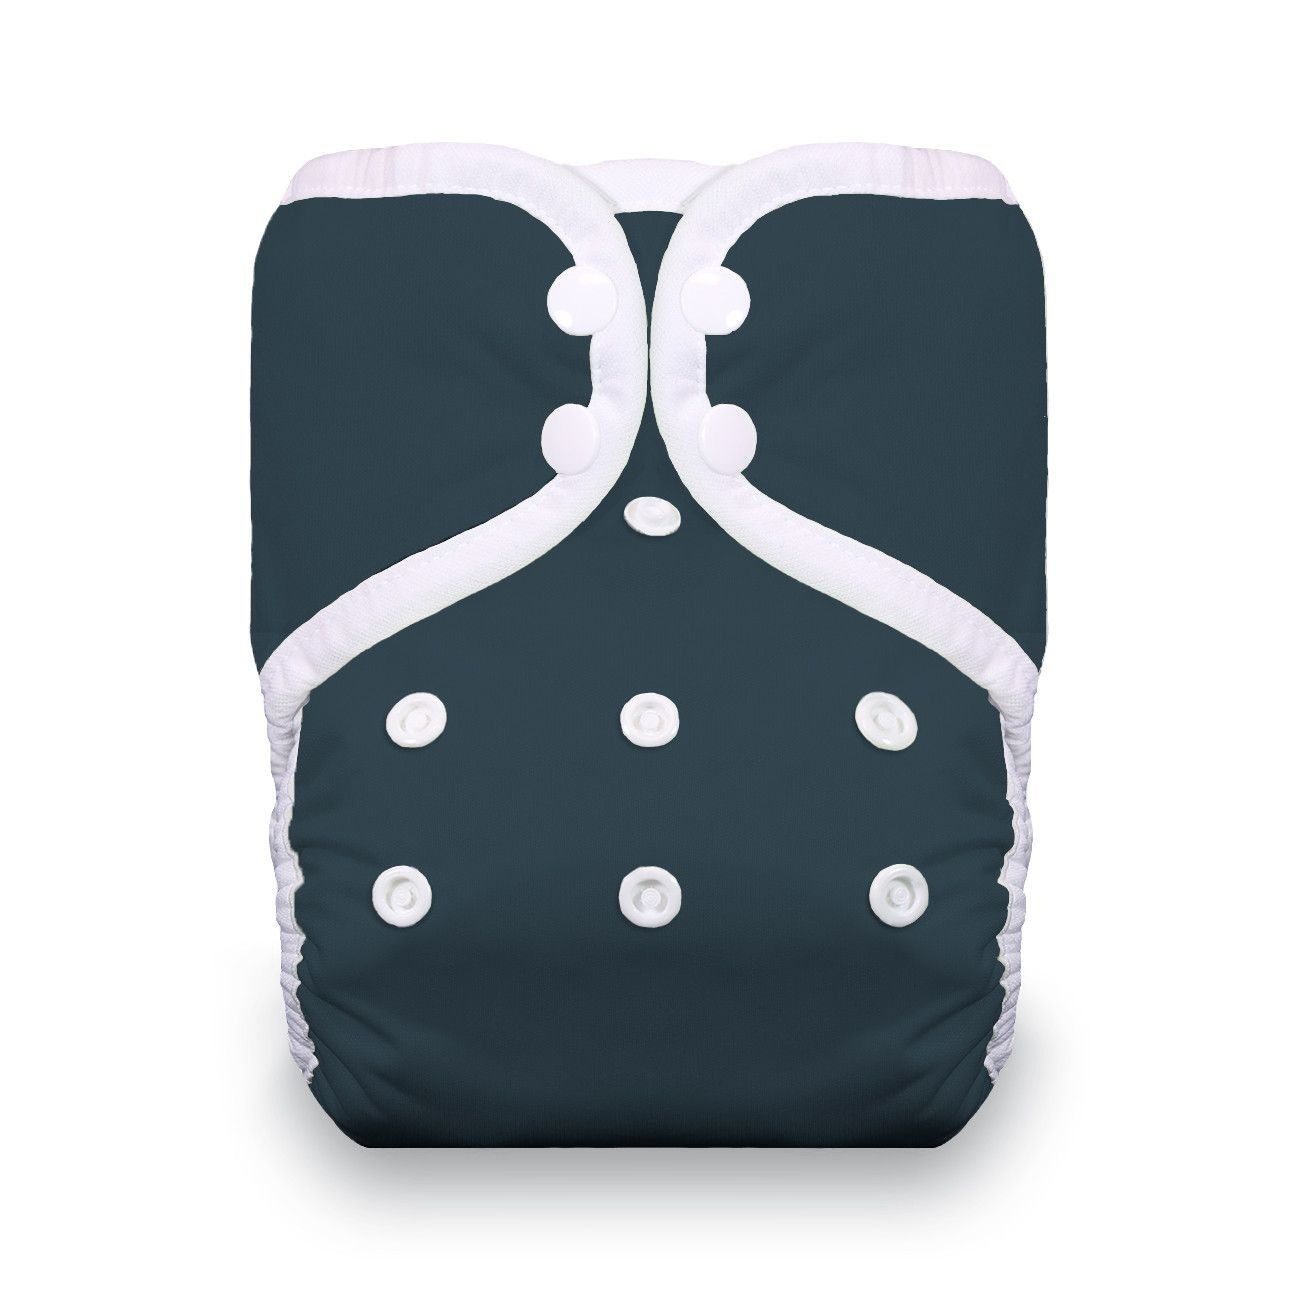 Thirsties OS Pocket Diaper - Snap (All Colors)